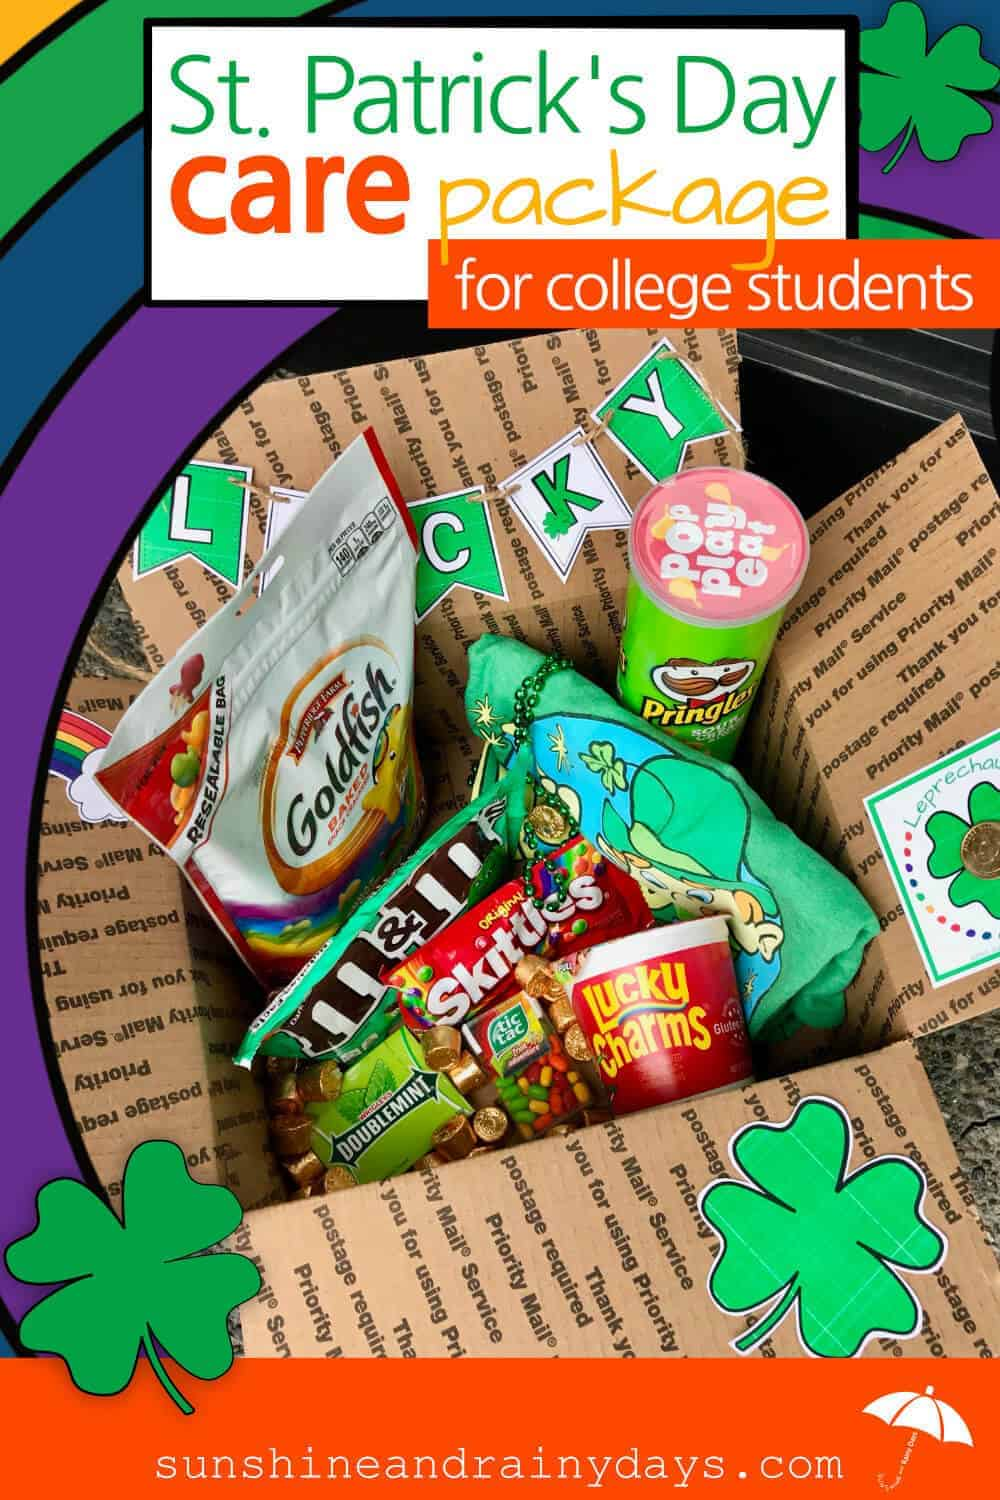 Help your college student celebrate St. Patrick's Day with a St. Patrick's Day Care Package! Don't let your college kid get pinched by a tricky leprechaun! Send them LOTS of GREEN!